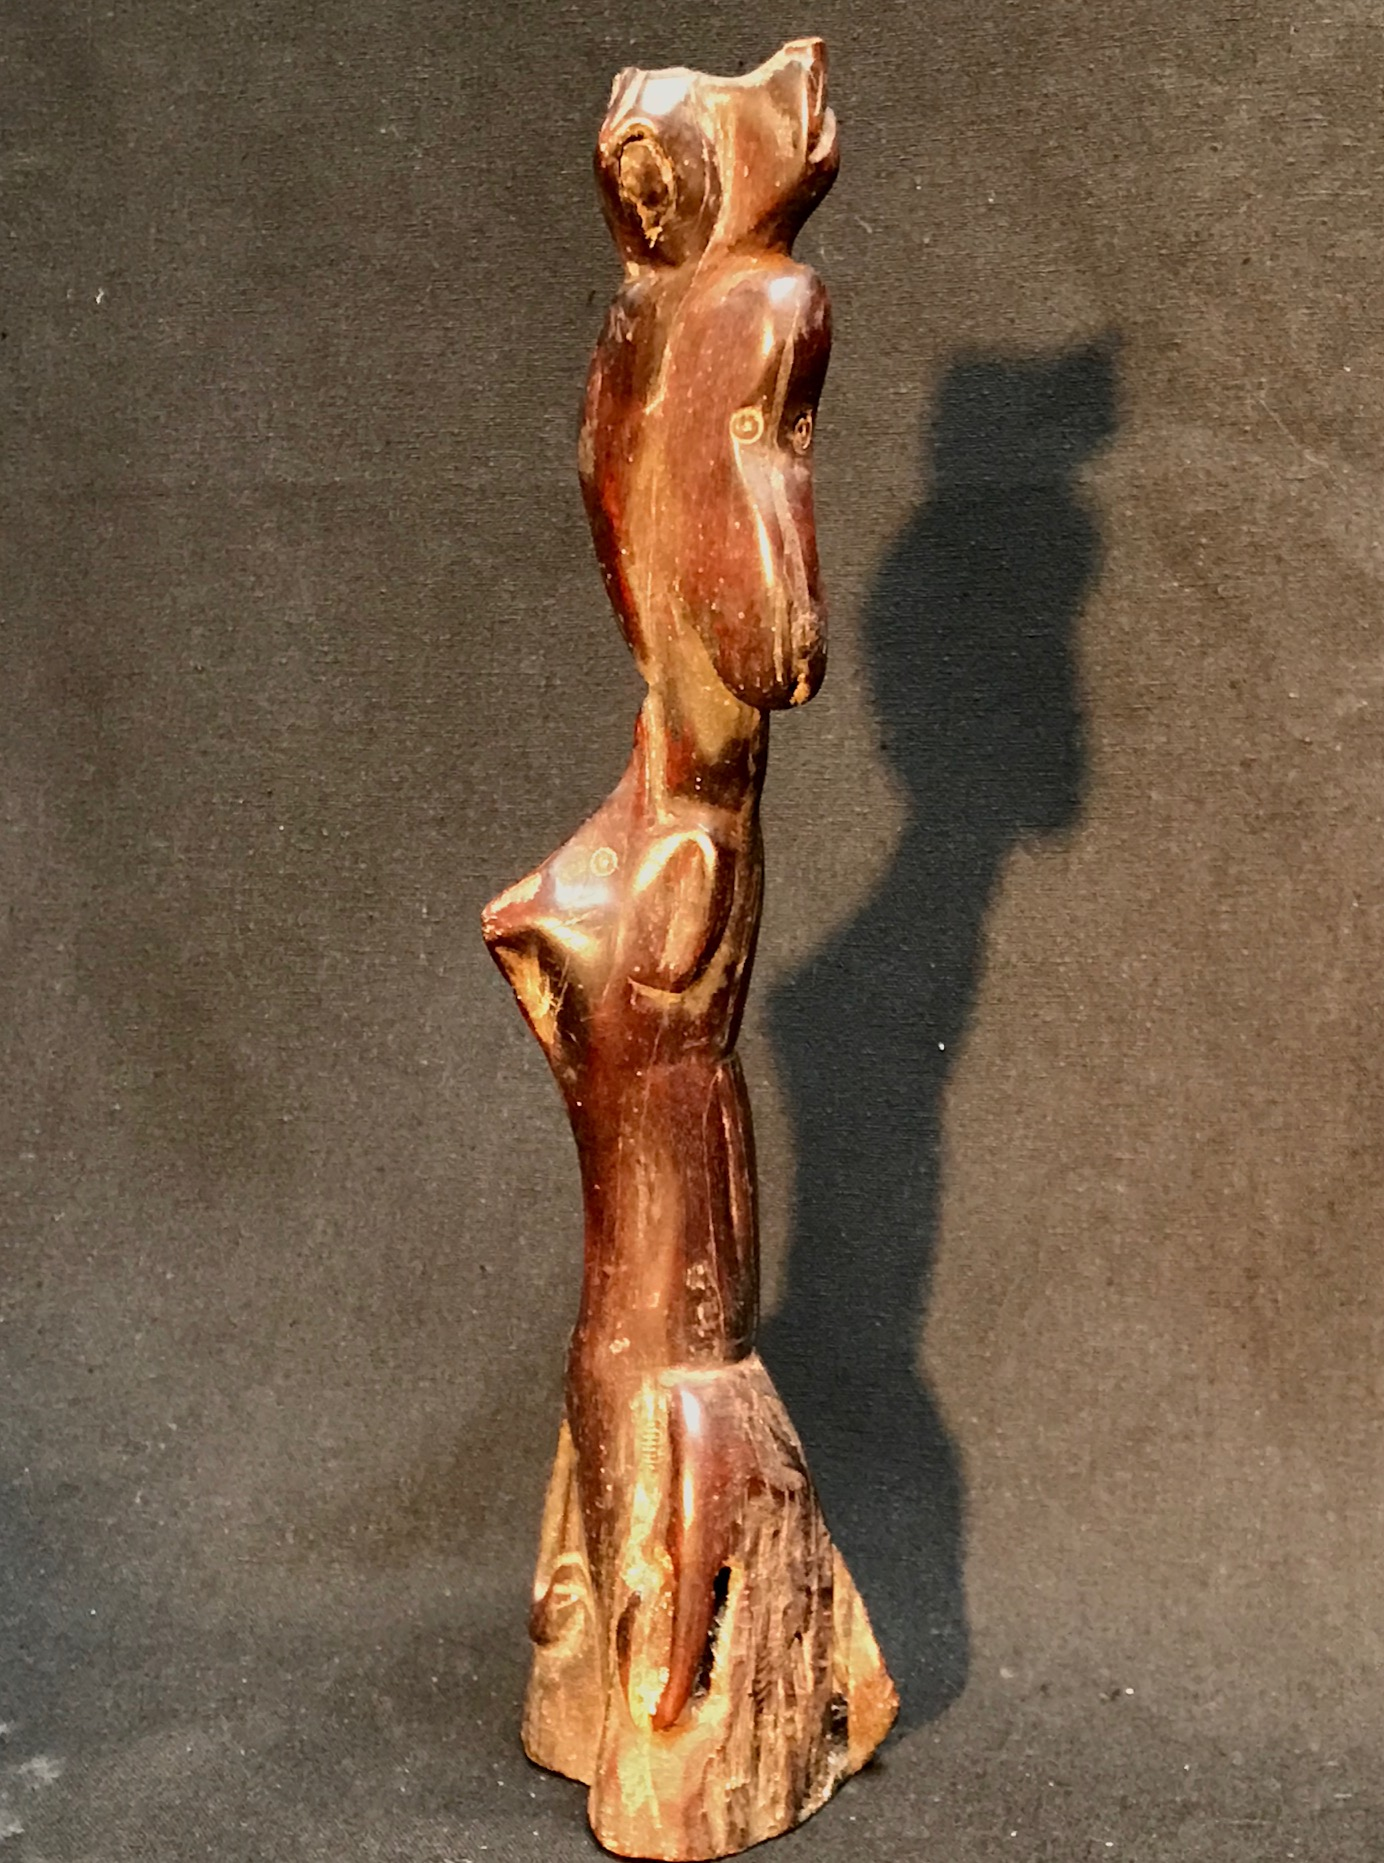 "Shaman's Power Object/Healing Wand, Cat, Horse, Dog, Bird, Sumba Island, Indonesia, Early 20th c., wood, 9 1/2"" x 2 1/4"" x 2"""